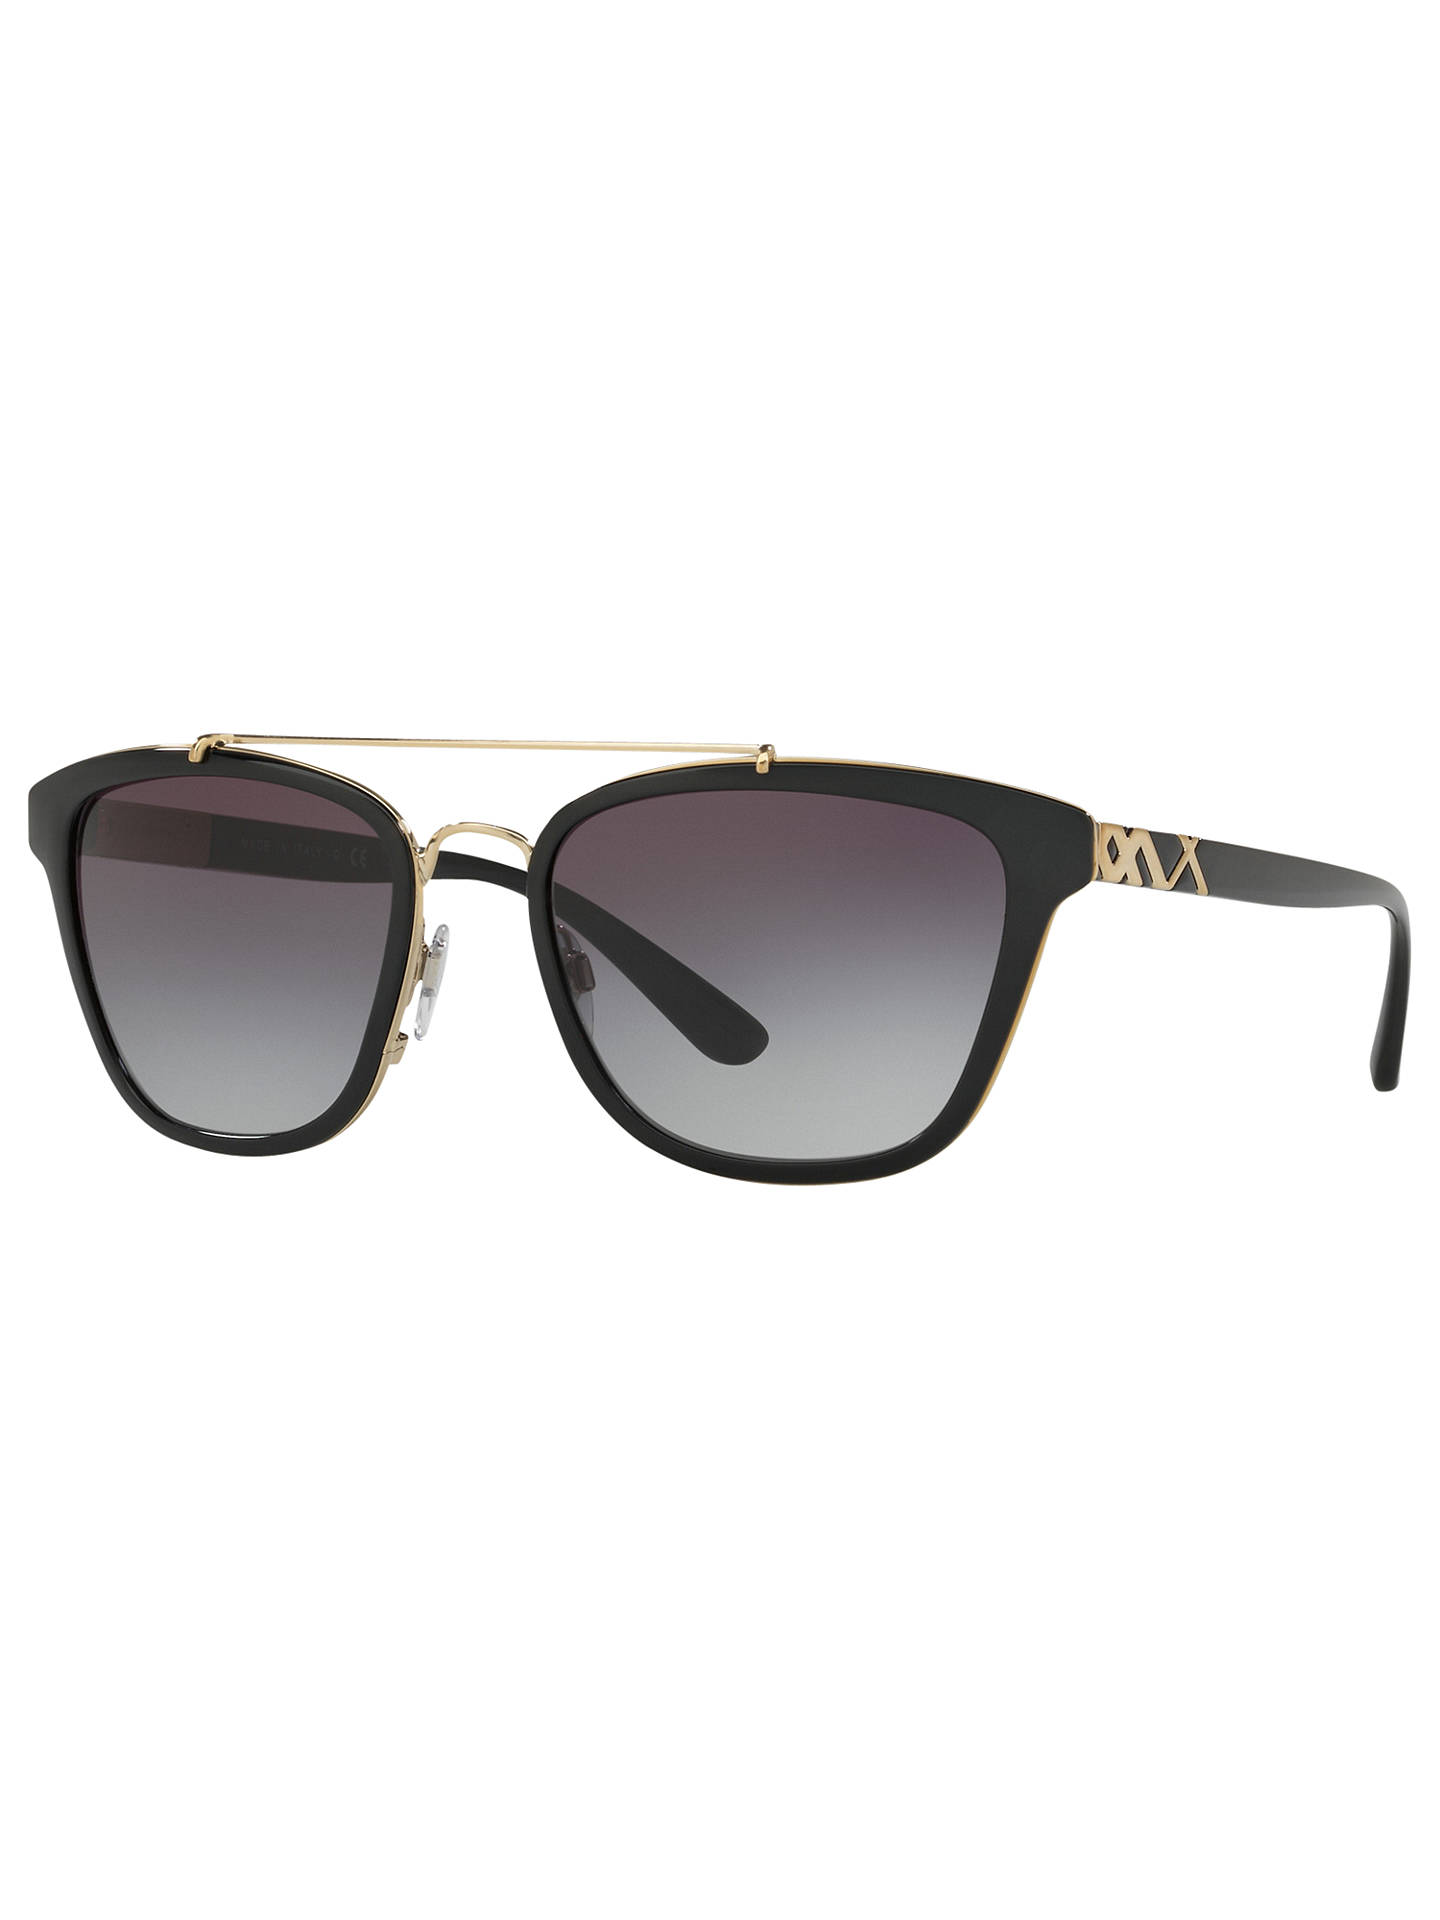 BuyBurberry BE4240 D-Frame Sunglasses, Matte Black/Grey Gradient Online at johnlewis.com